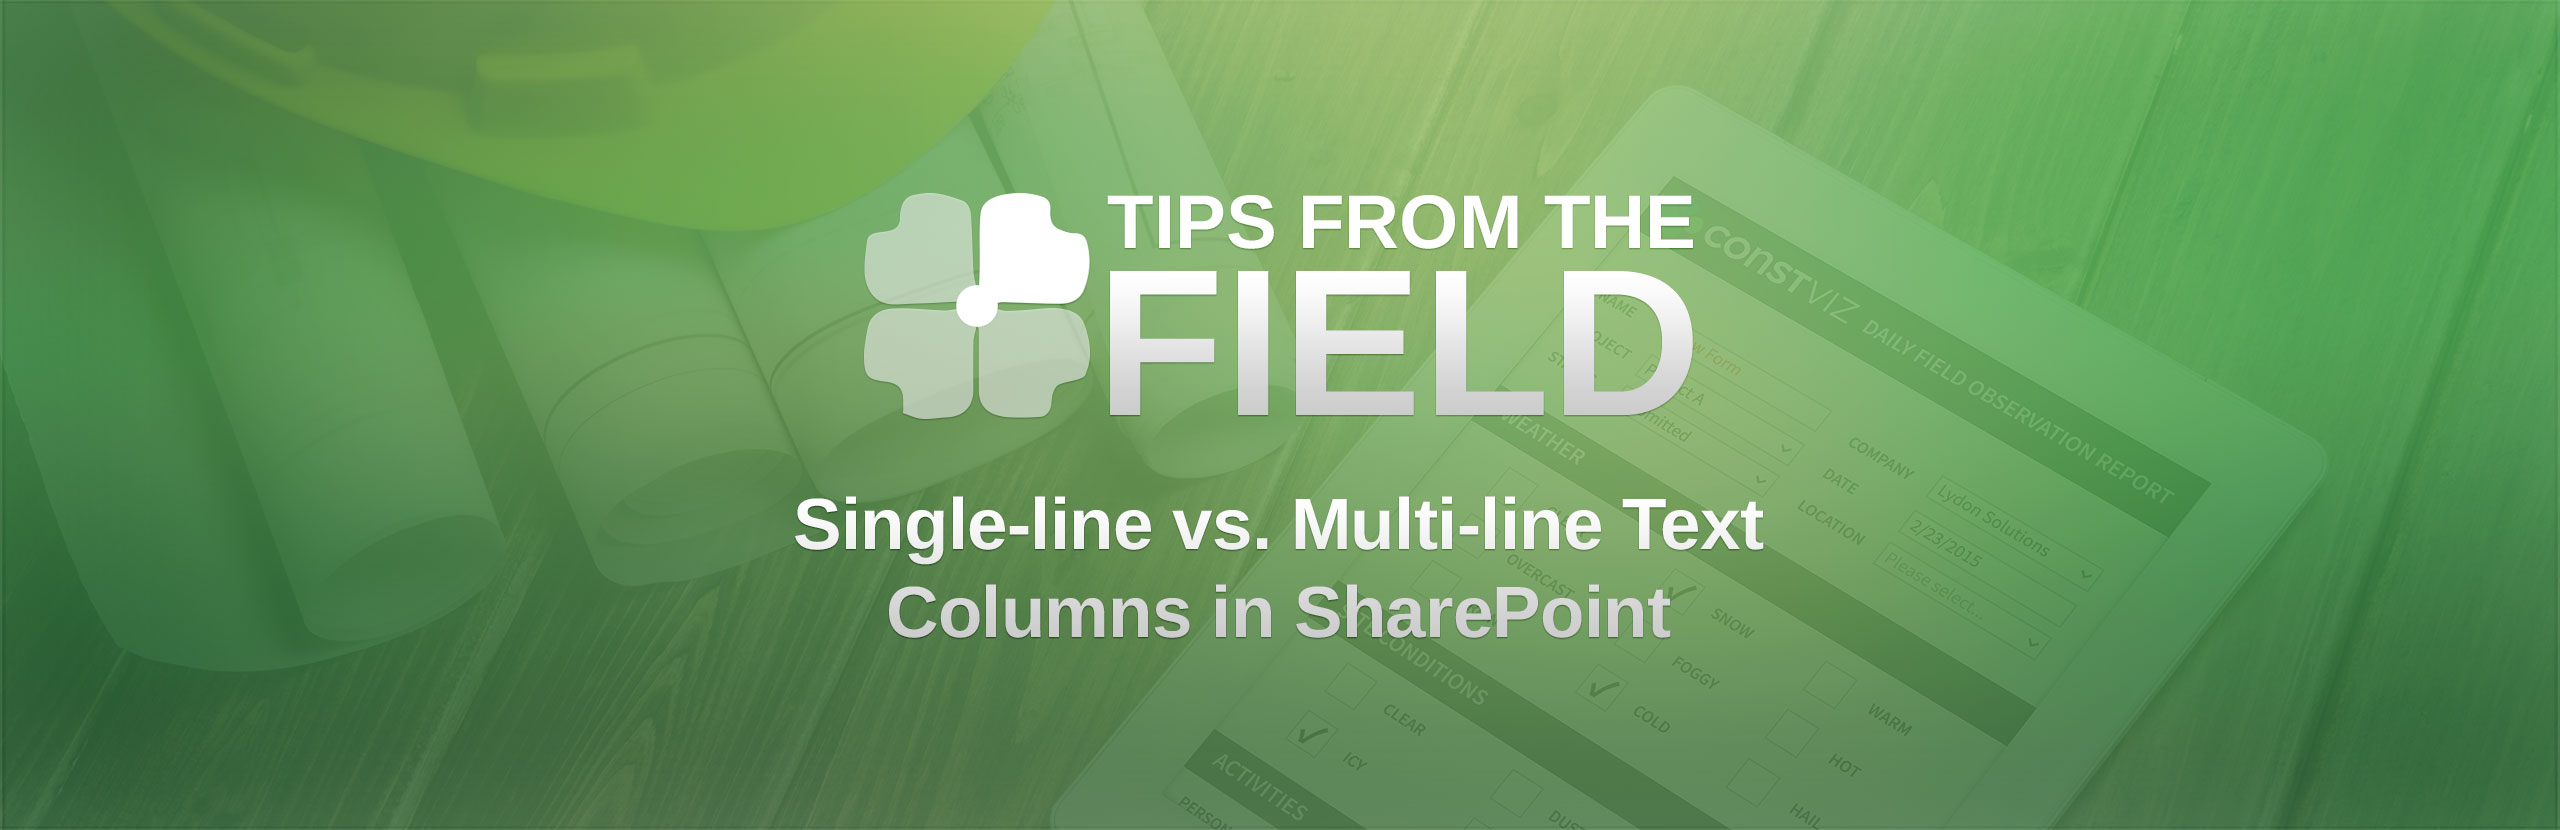 Difference between a single-line vs  multi-line text column